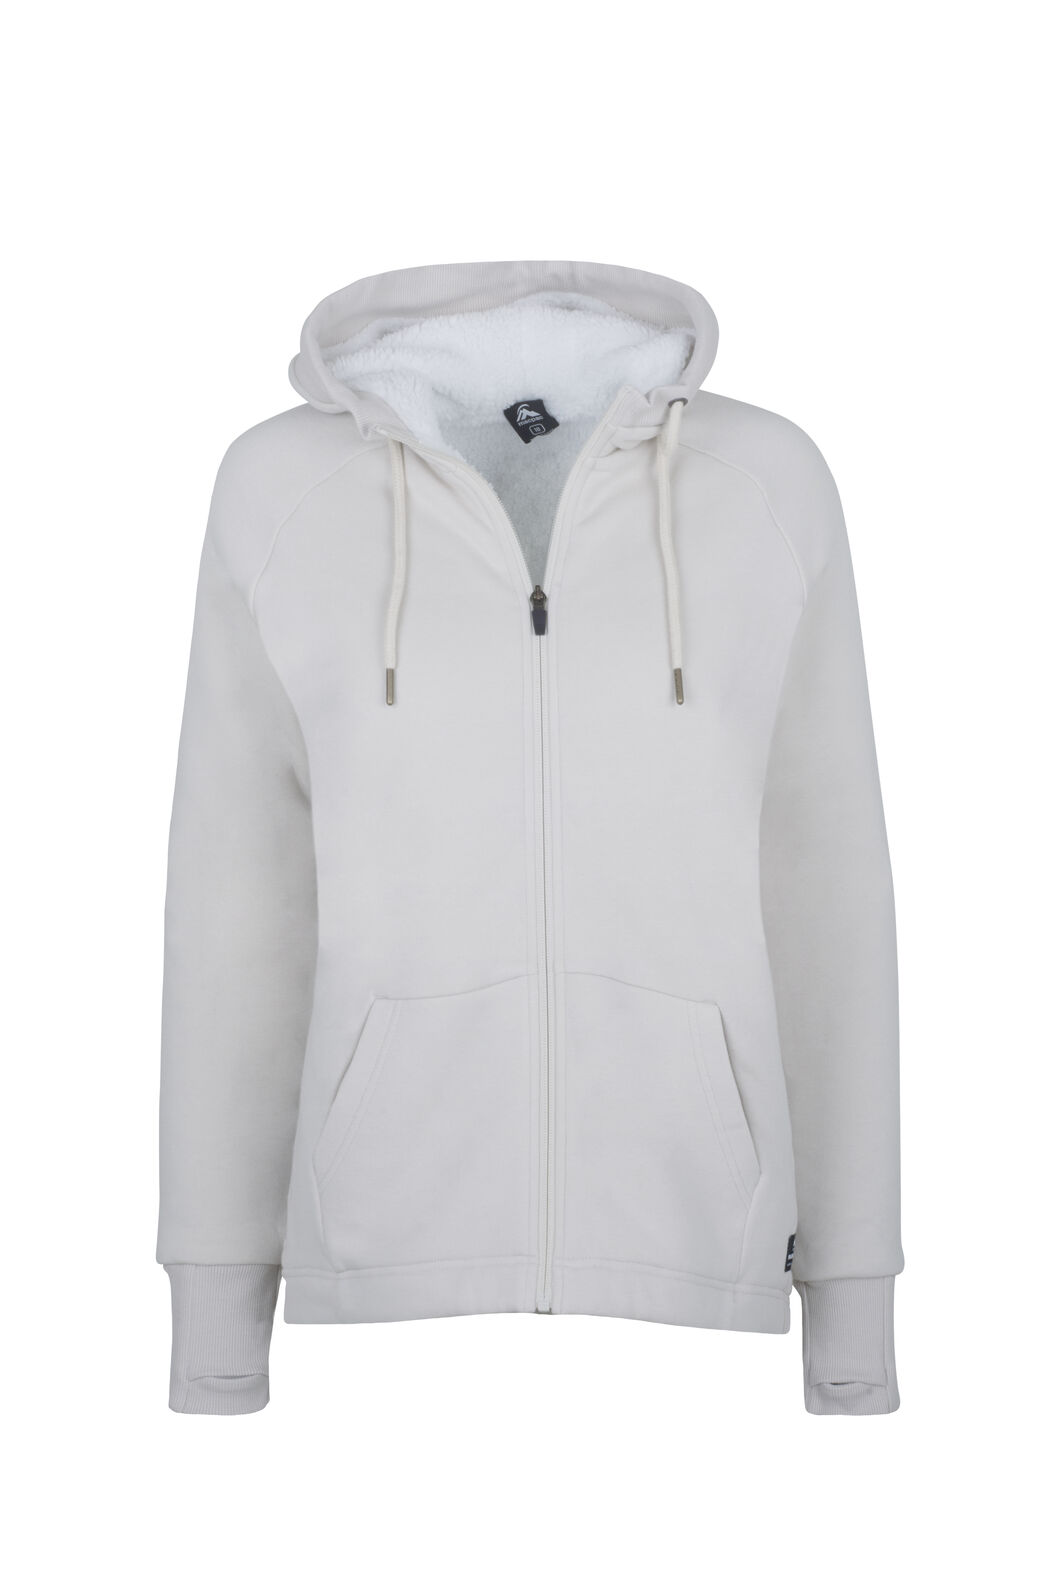 Macpac Sherpa Hoody - Women's, Moonbeam Marle, hi-res